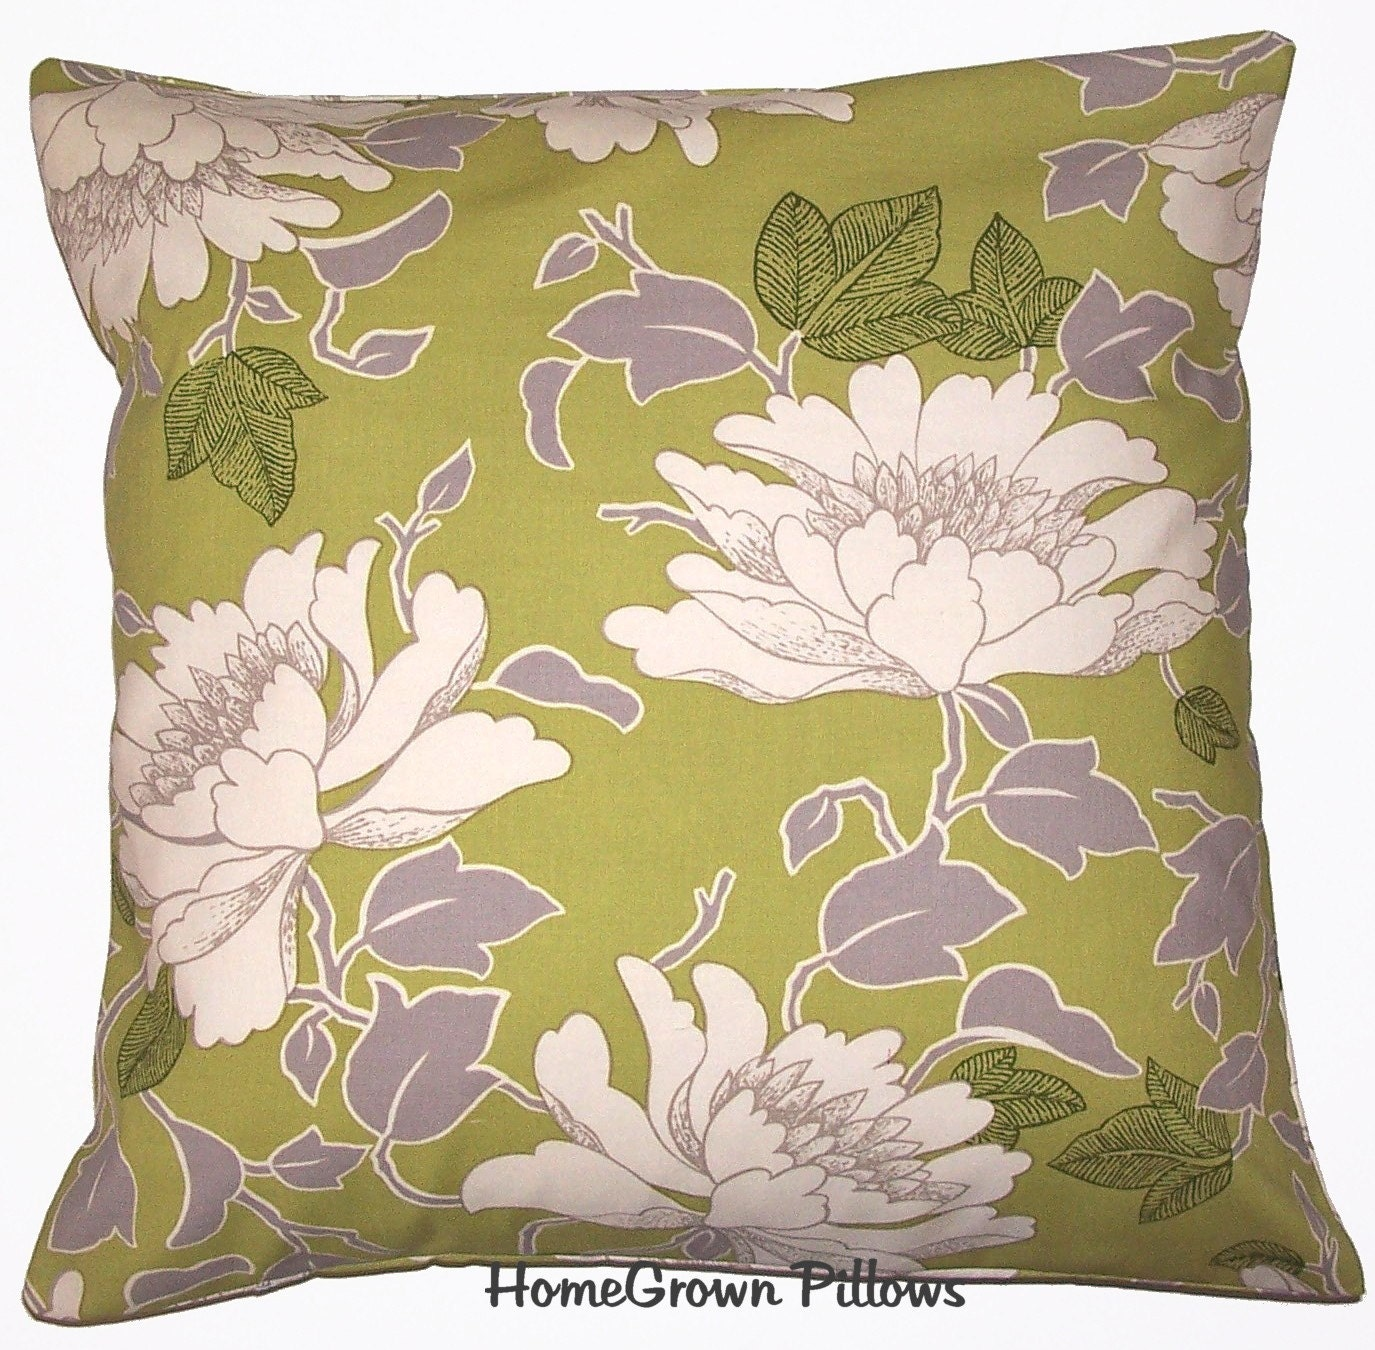 Decorative Pillows With Removable Covers : Handmade Throw Pillow Cover Removable Cover 16x16 Pillow